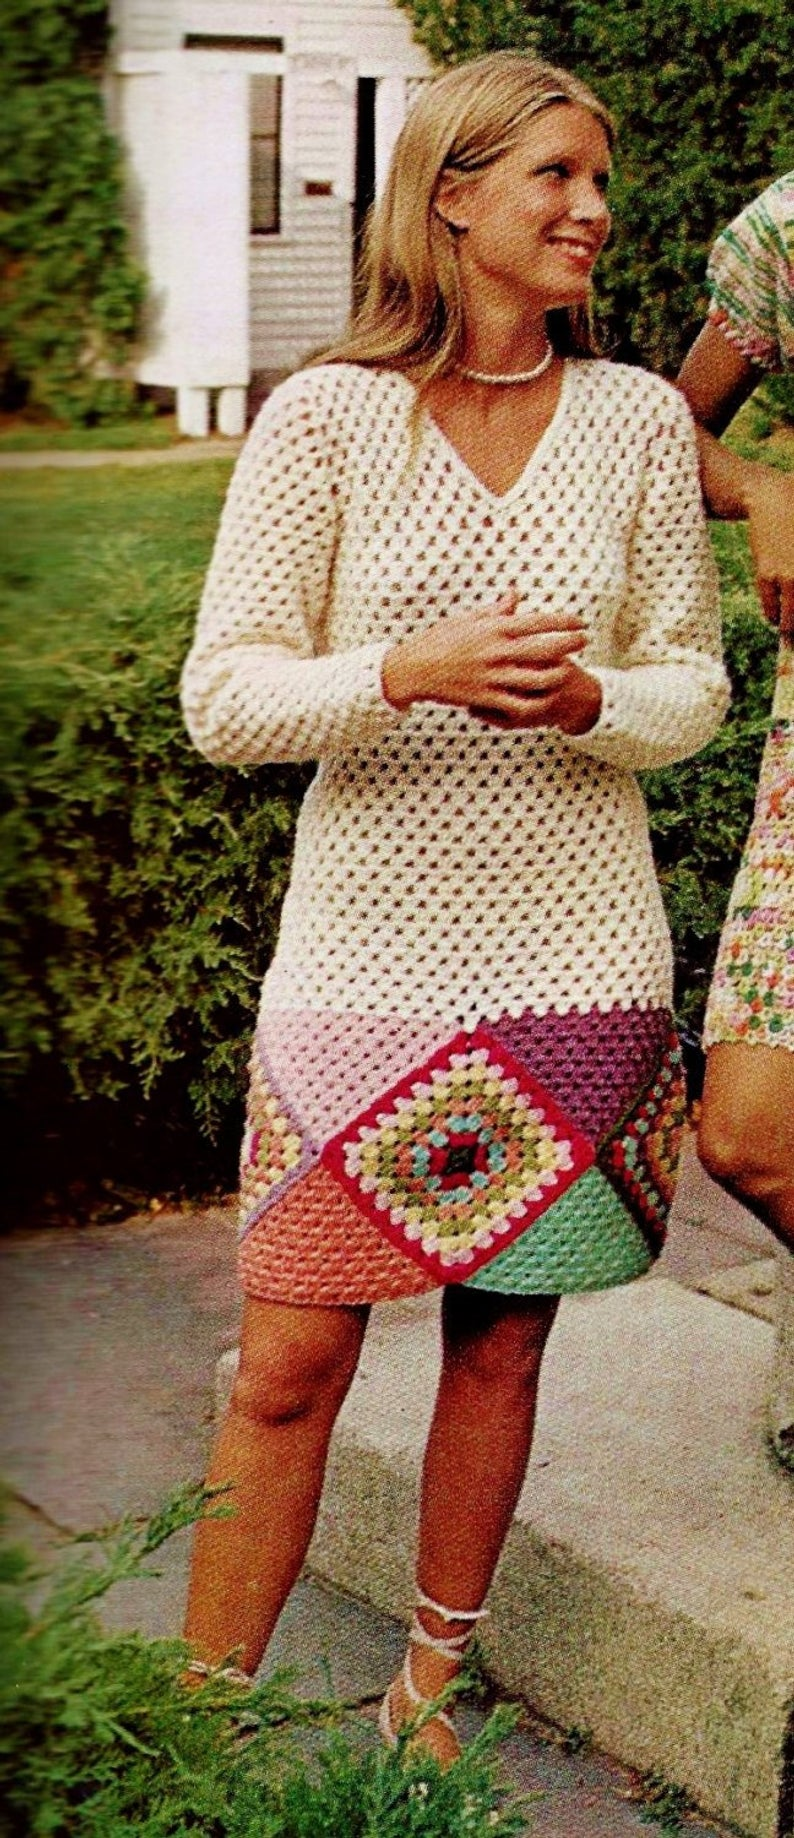 Get the retro granny square pattern via Etsy